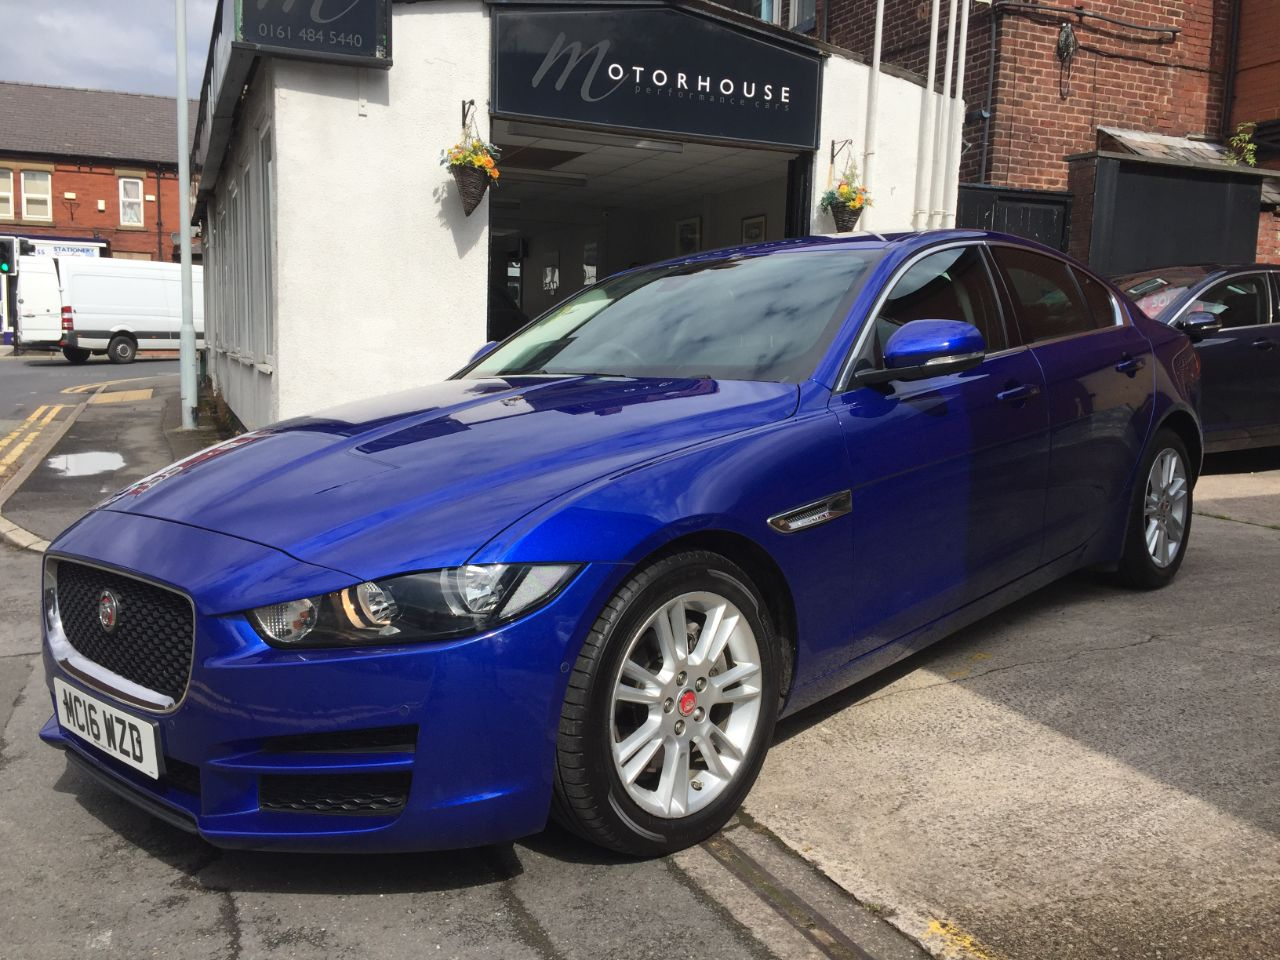 Jaguar XE 2.0d [180] Prestige 4dr Auto Saloon Diesel Blue at Motorhouse Cheshire Stockport